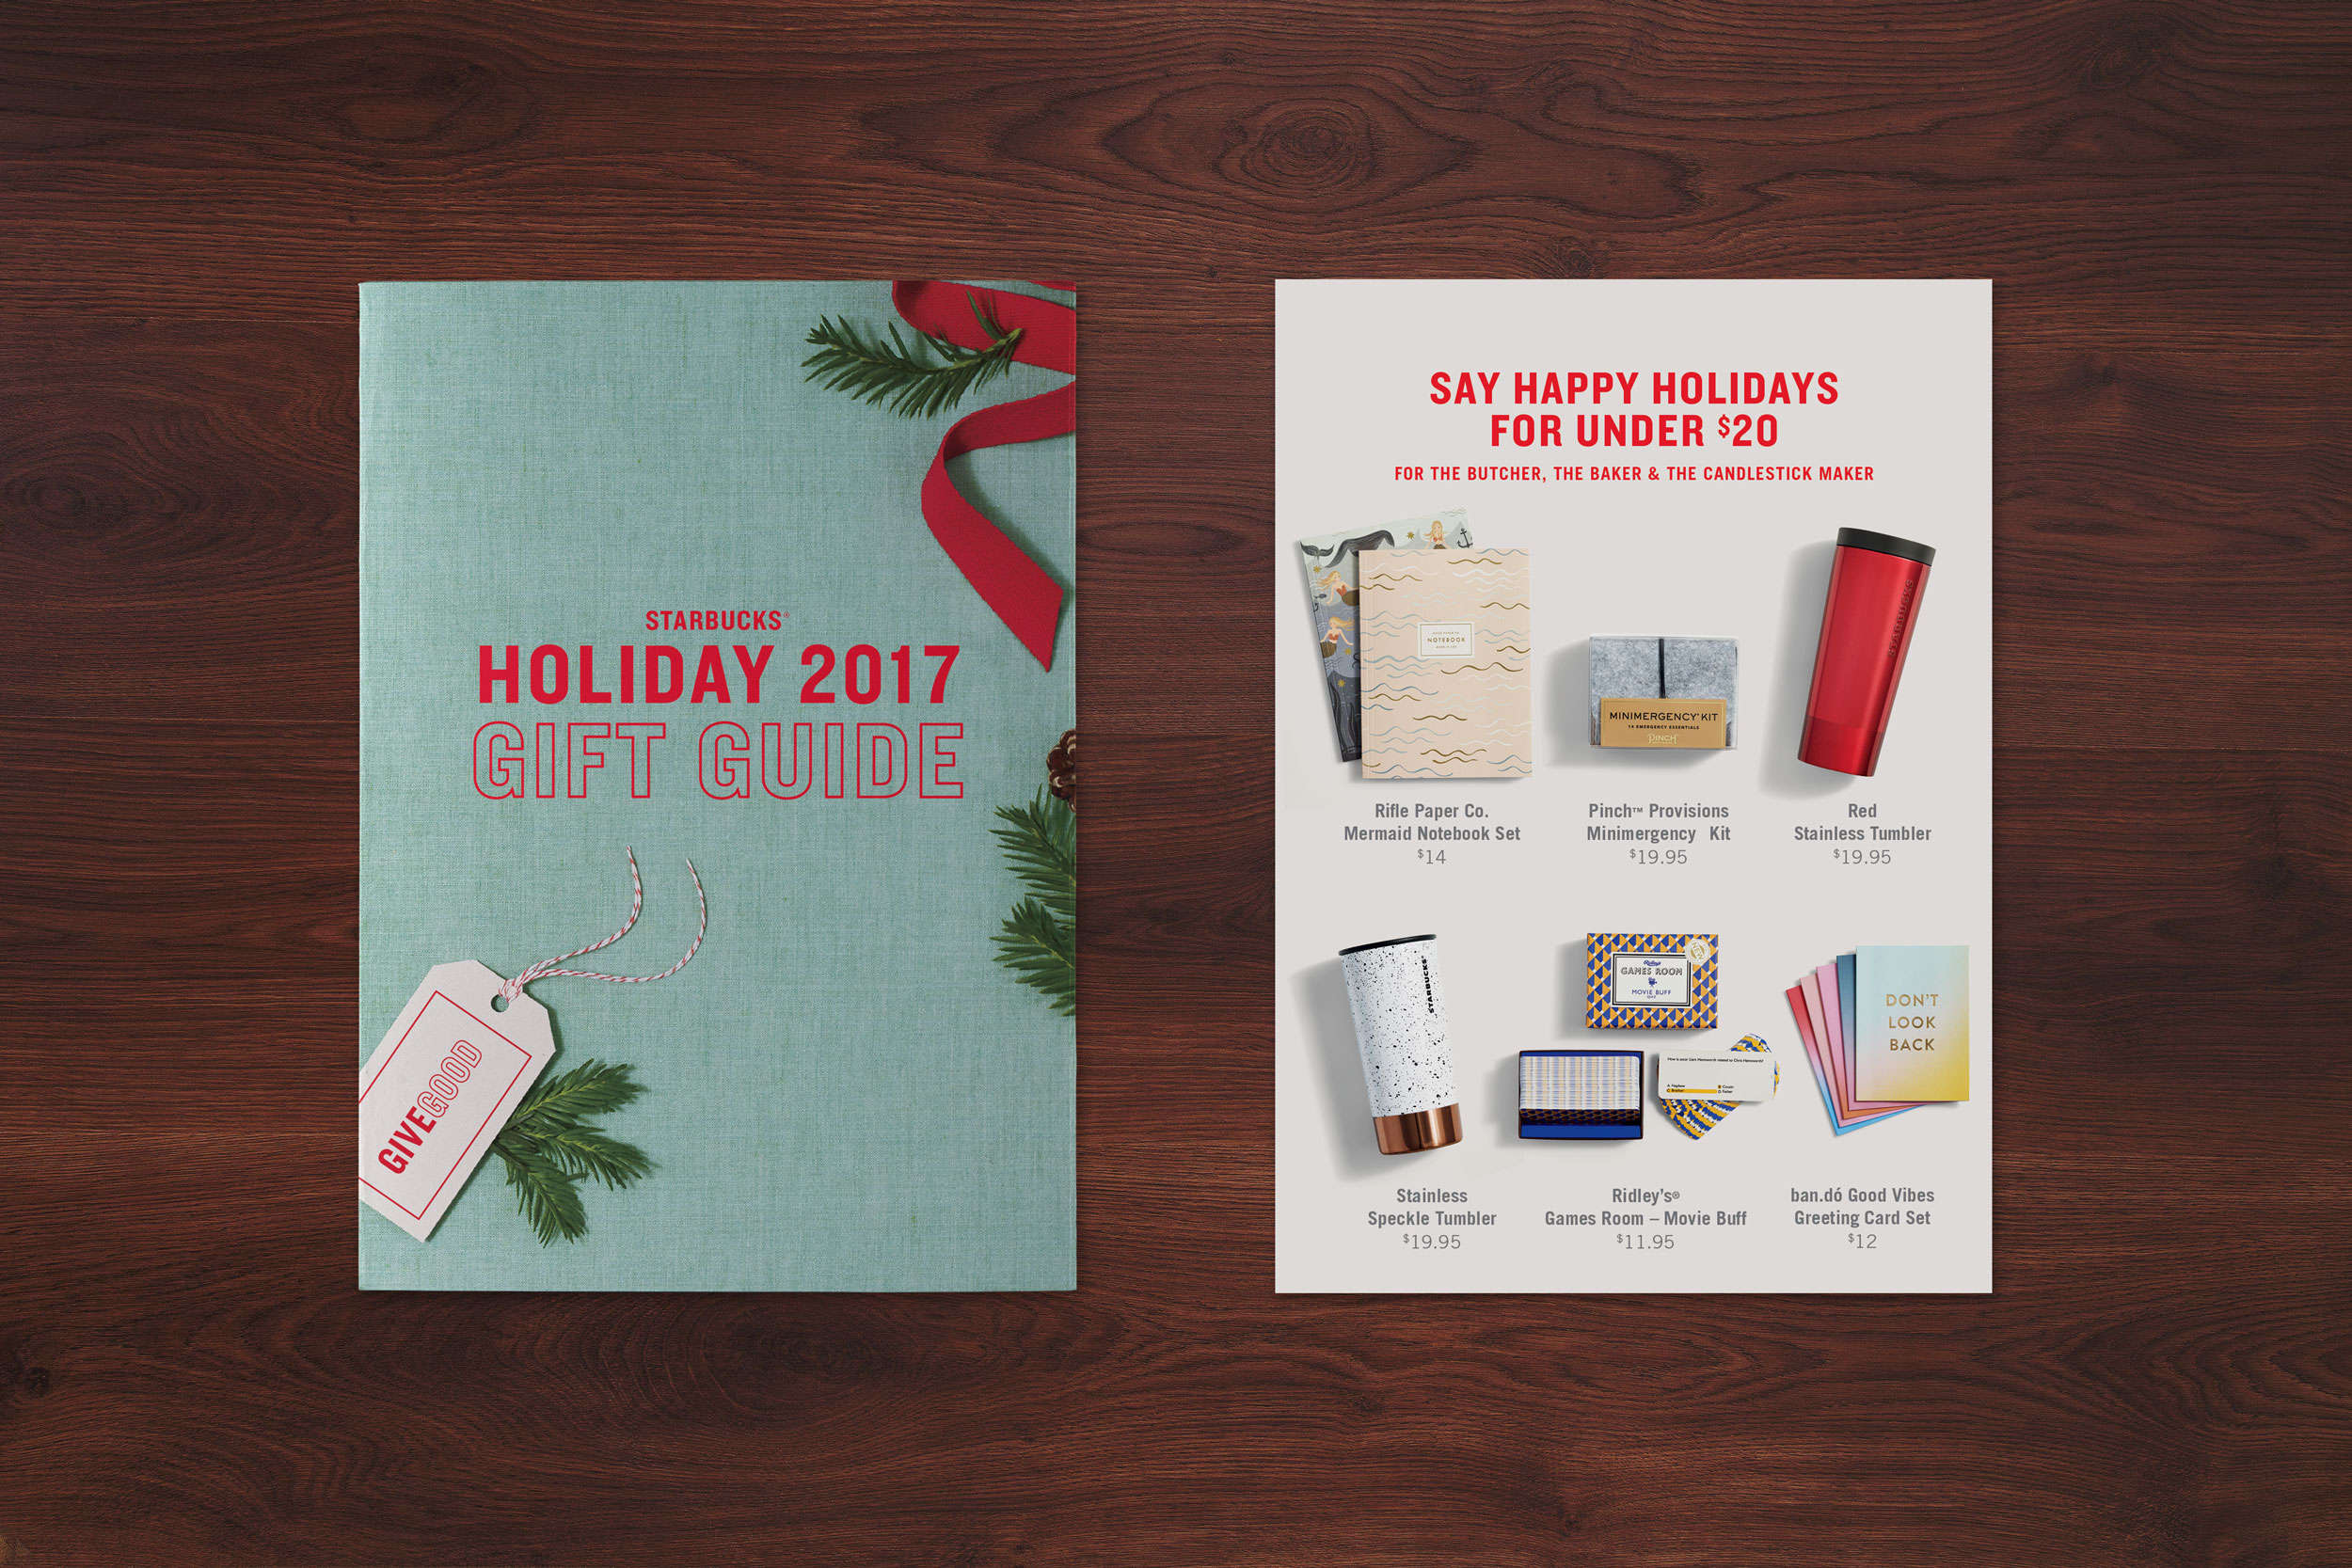 Holiday-Gift-Guide-Cover-Back-DETAIL.jpg